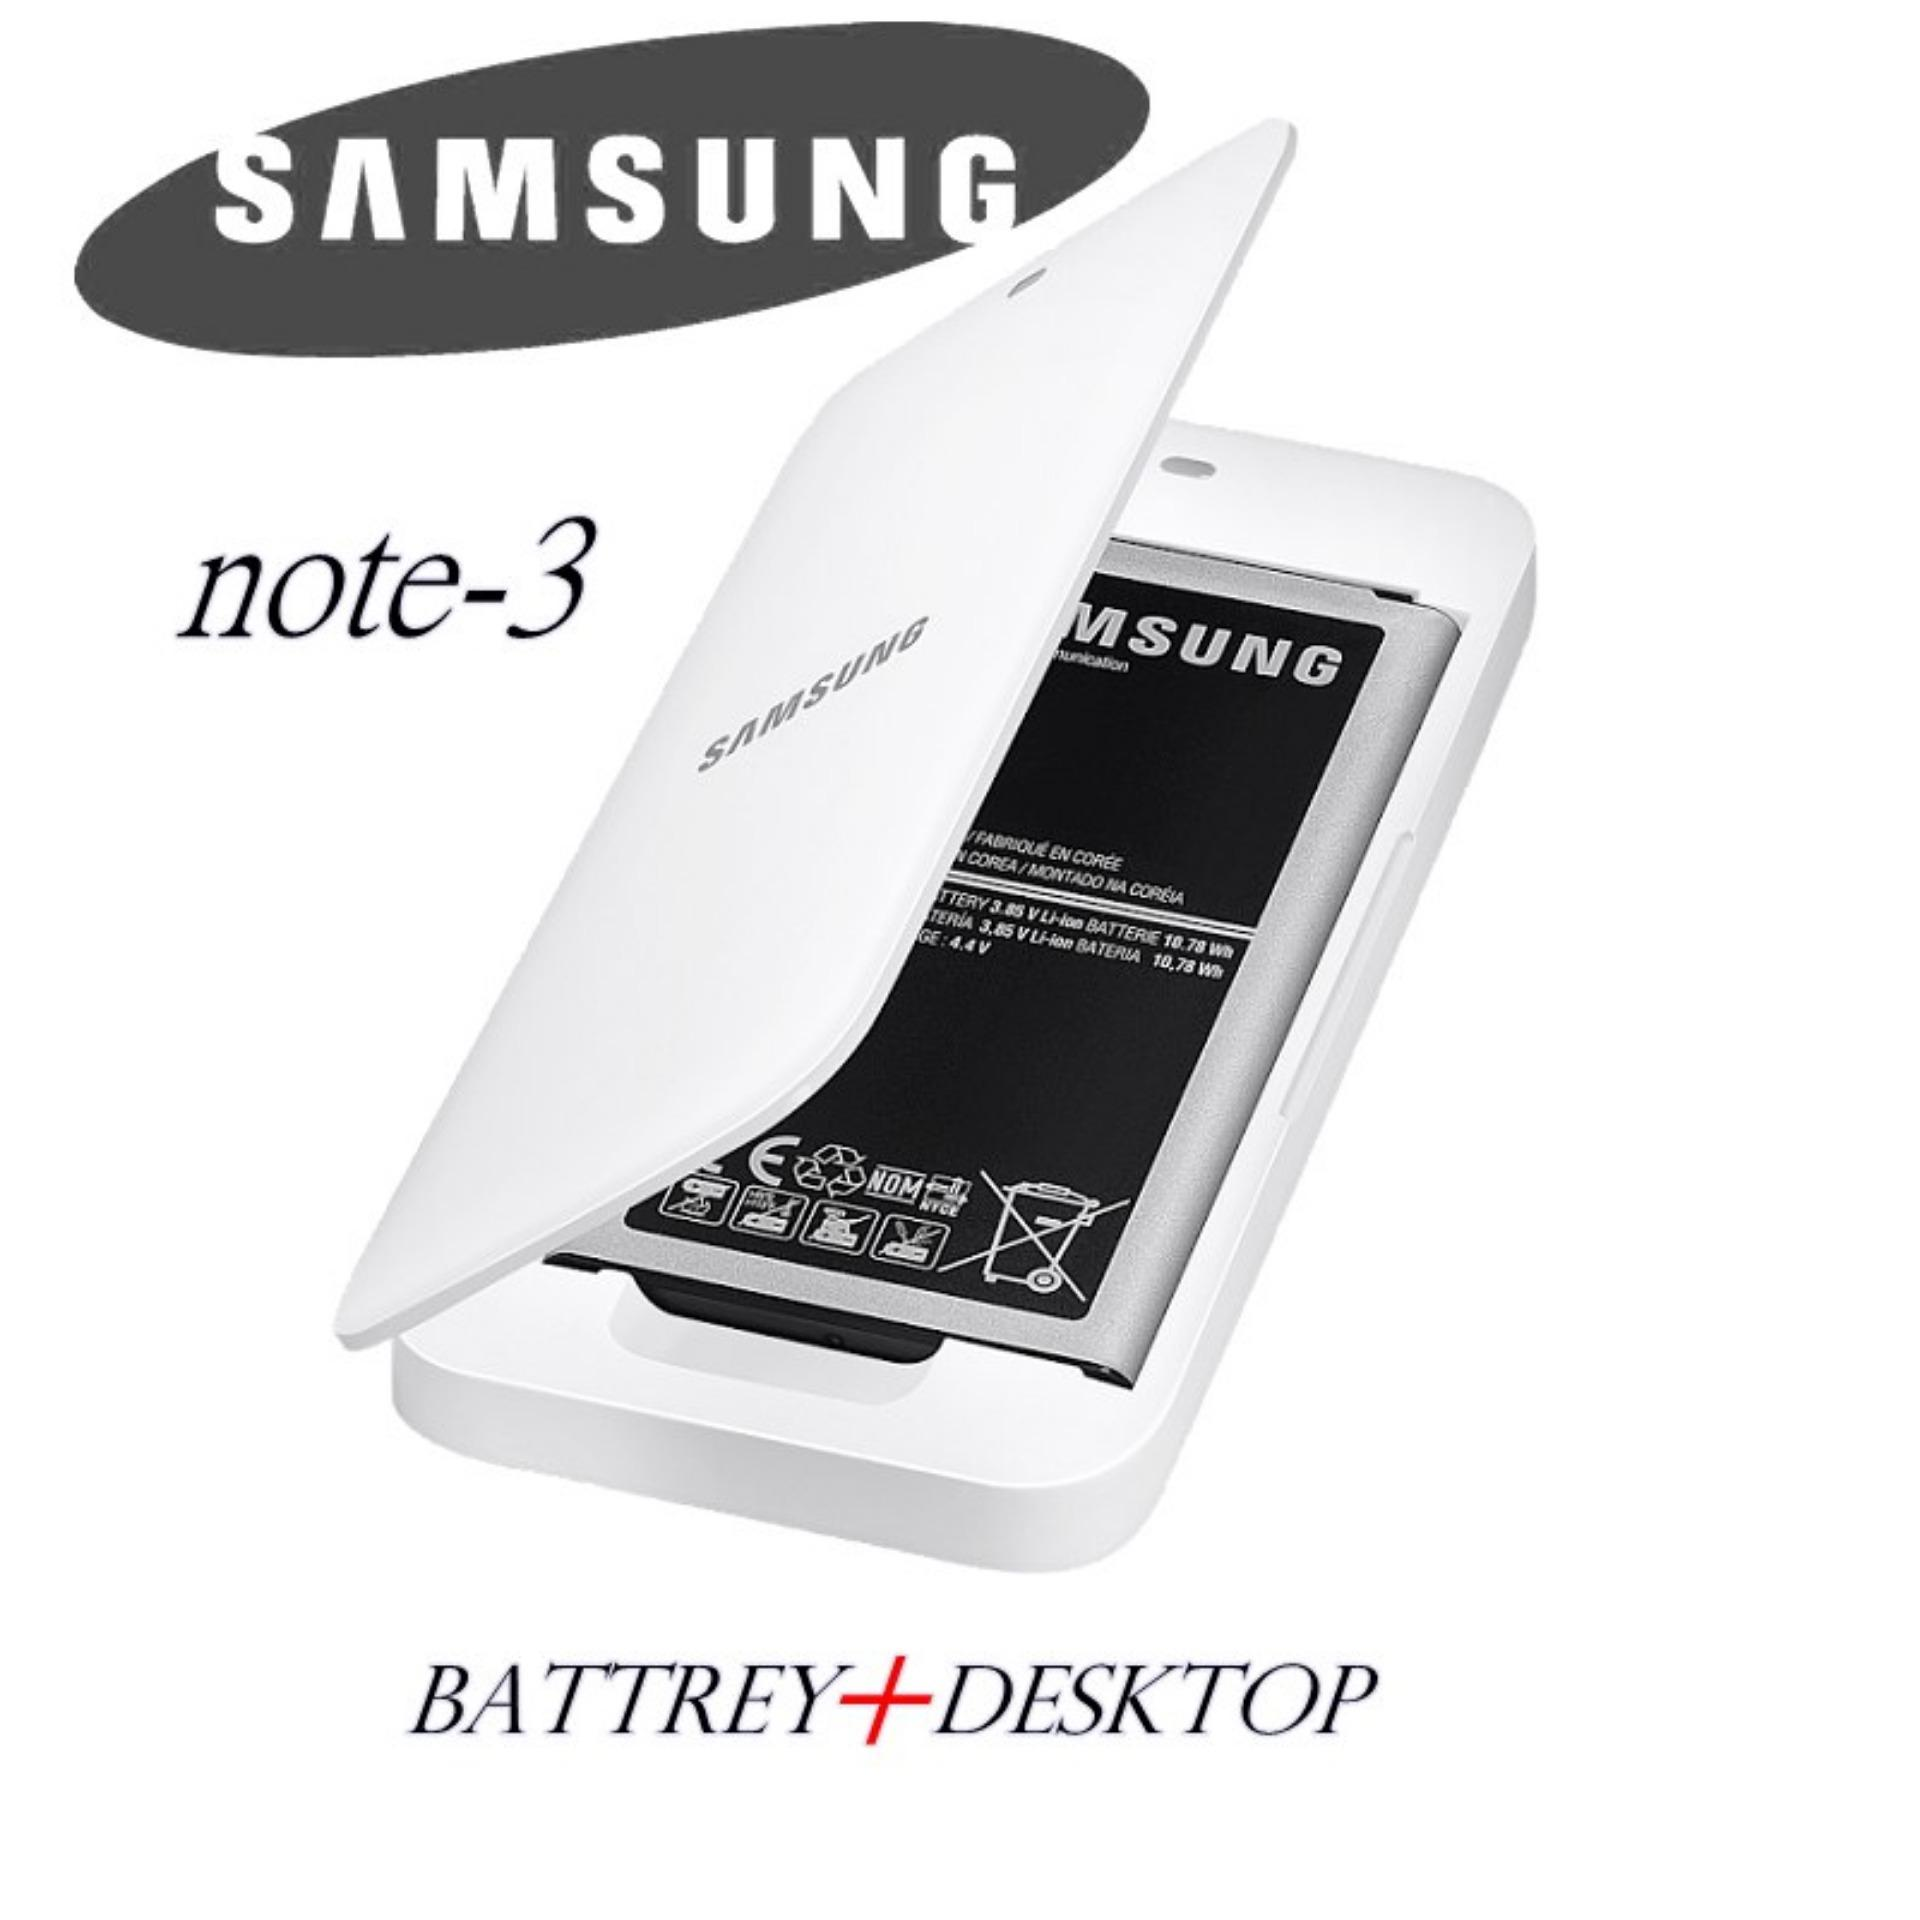 Katalog Extra Battery Kit For Samsung Note 3 Gratis Samsung Battery 3200Mah Samsung Terbaru